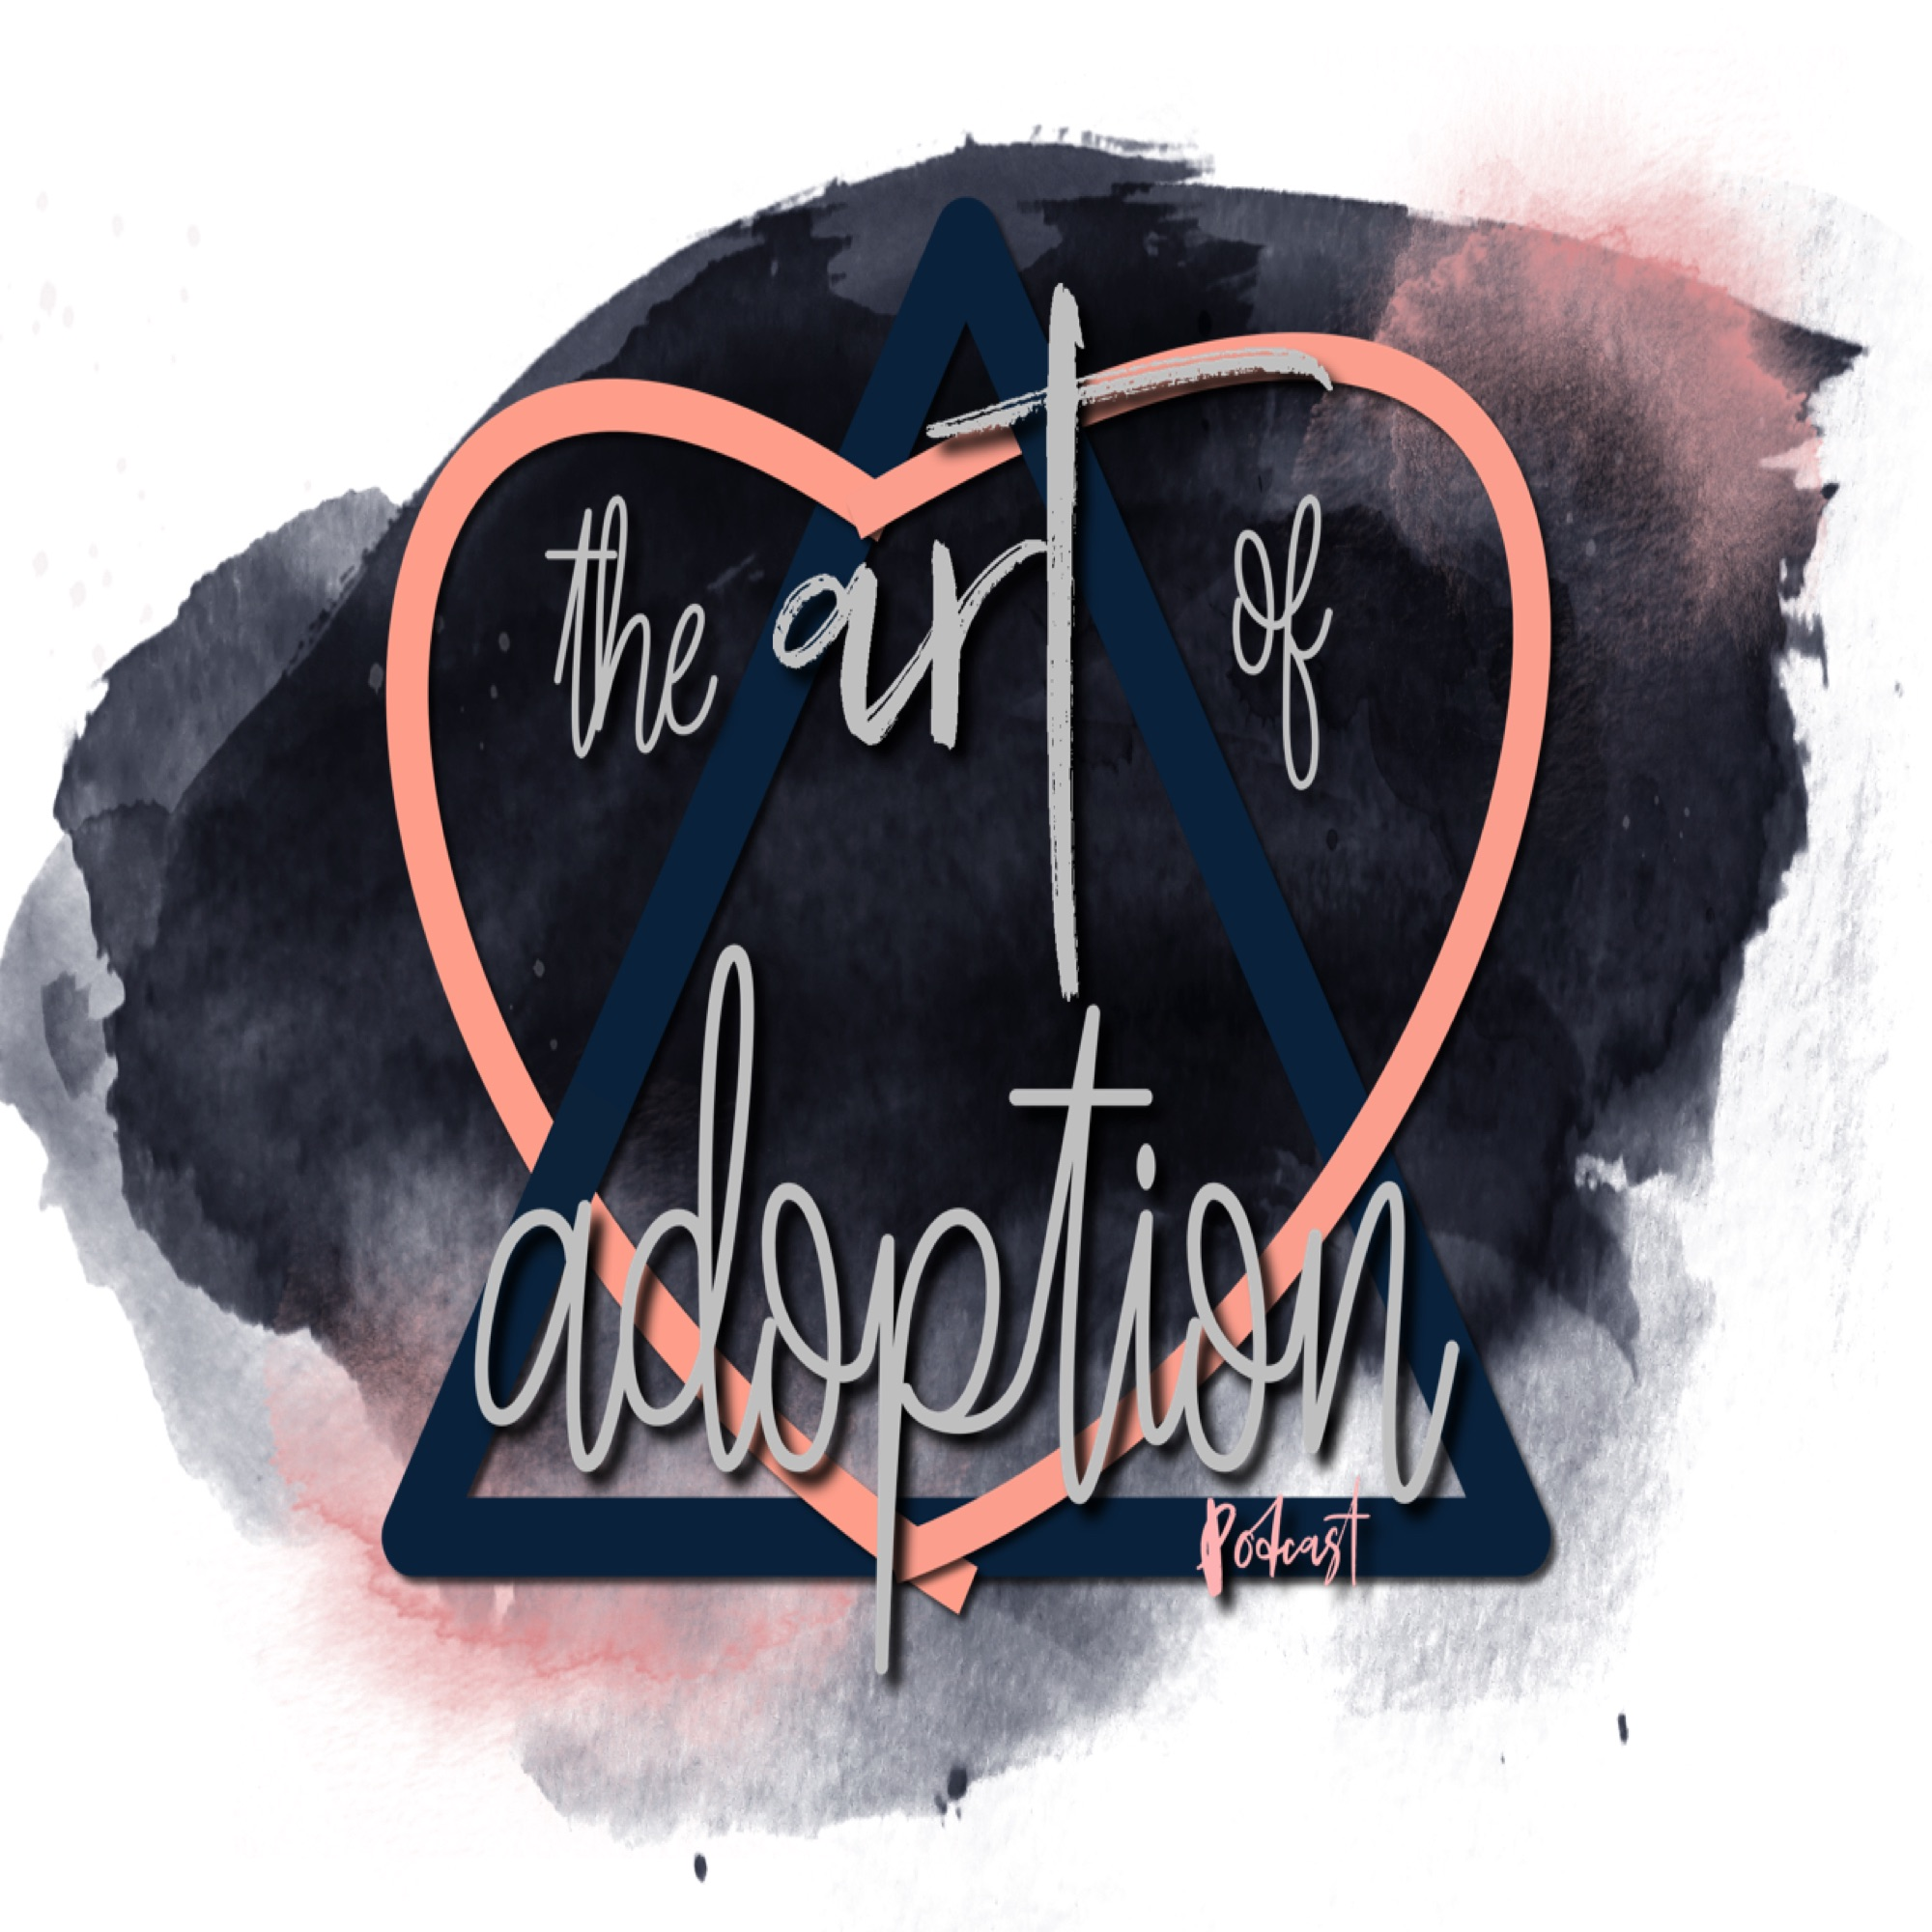 Introducing: The Art of Adoption